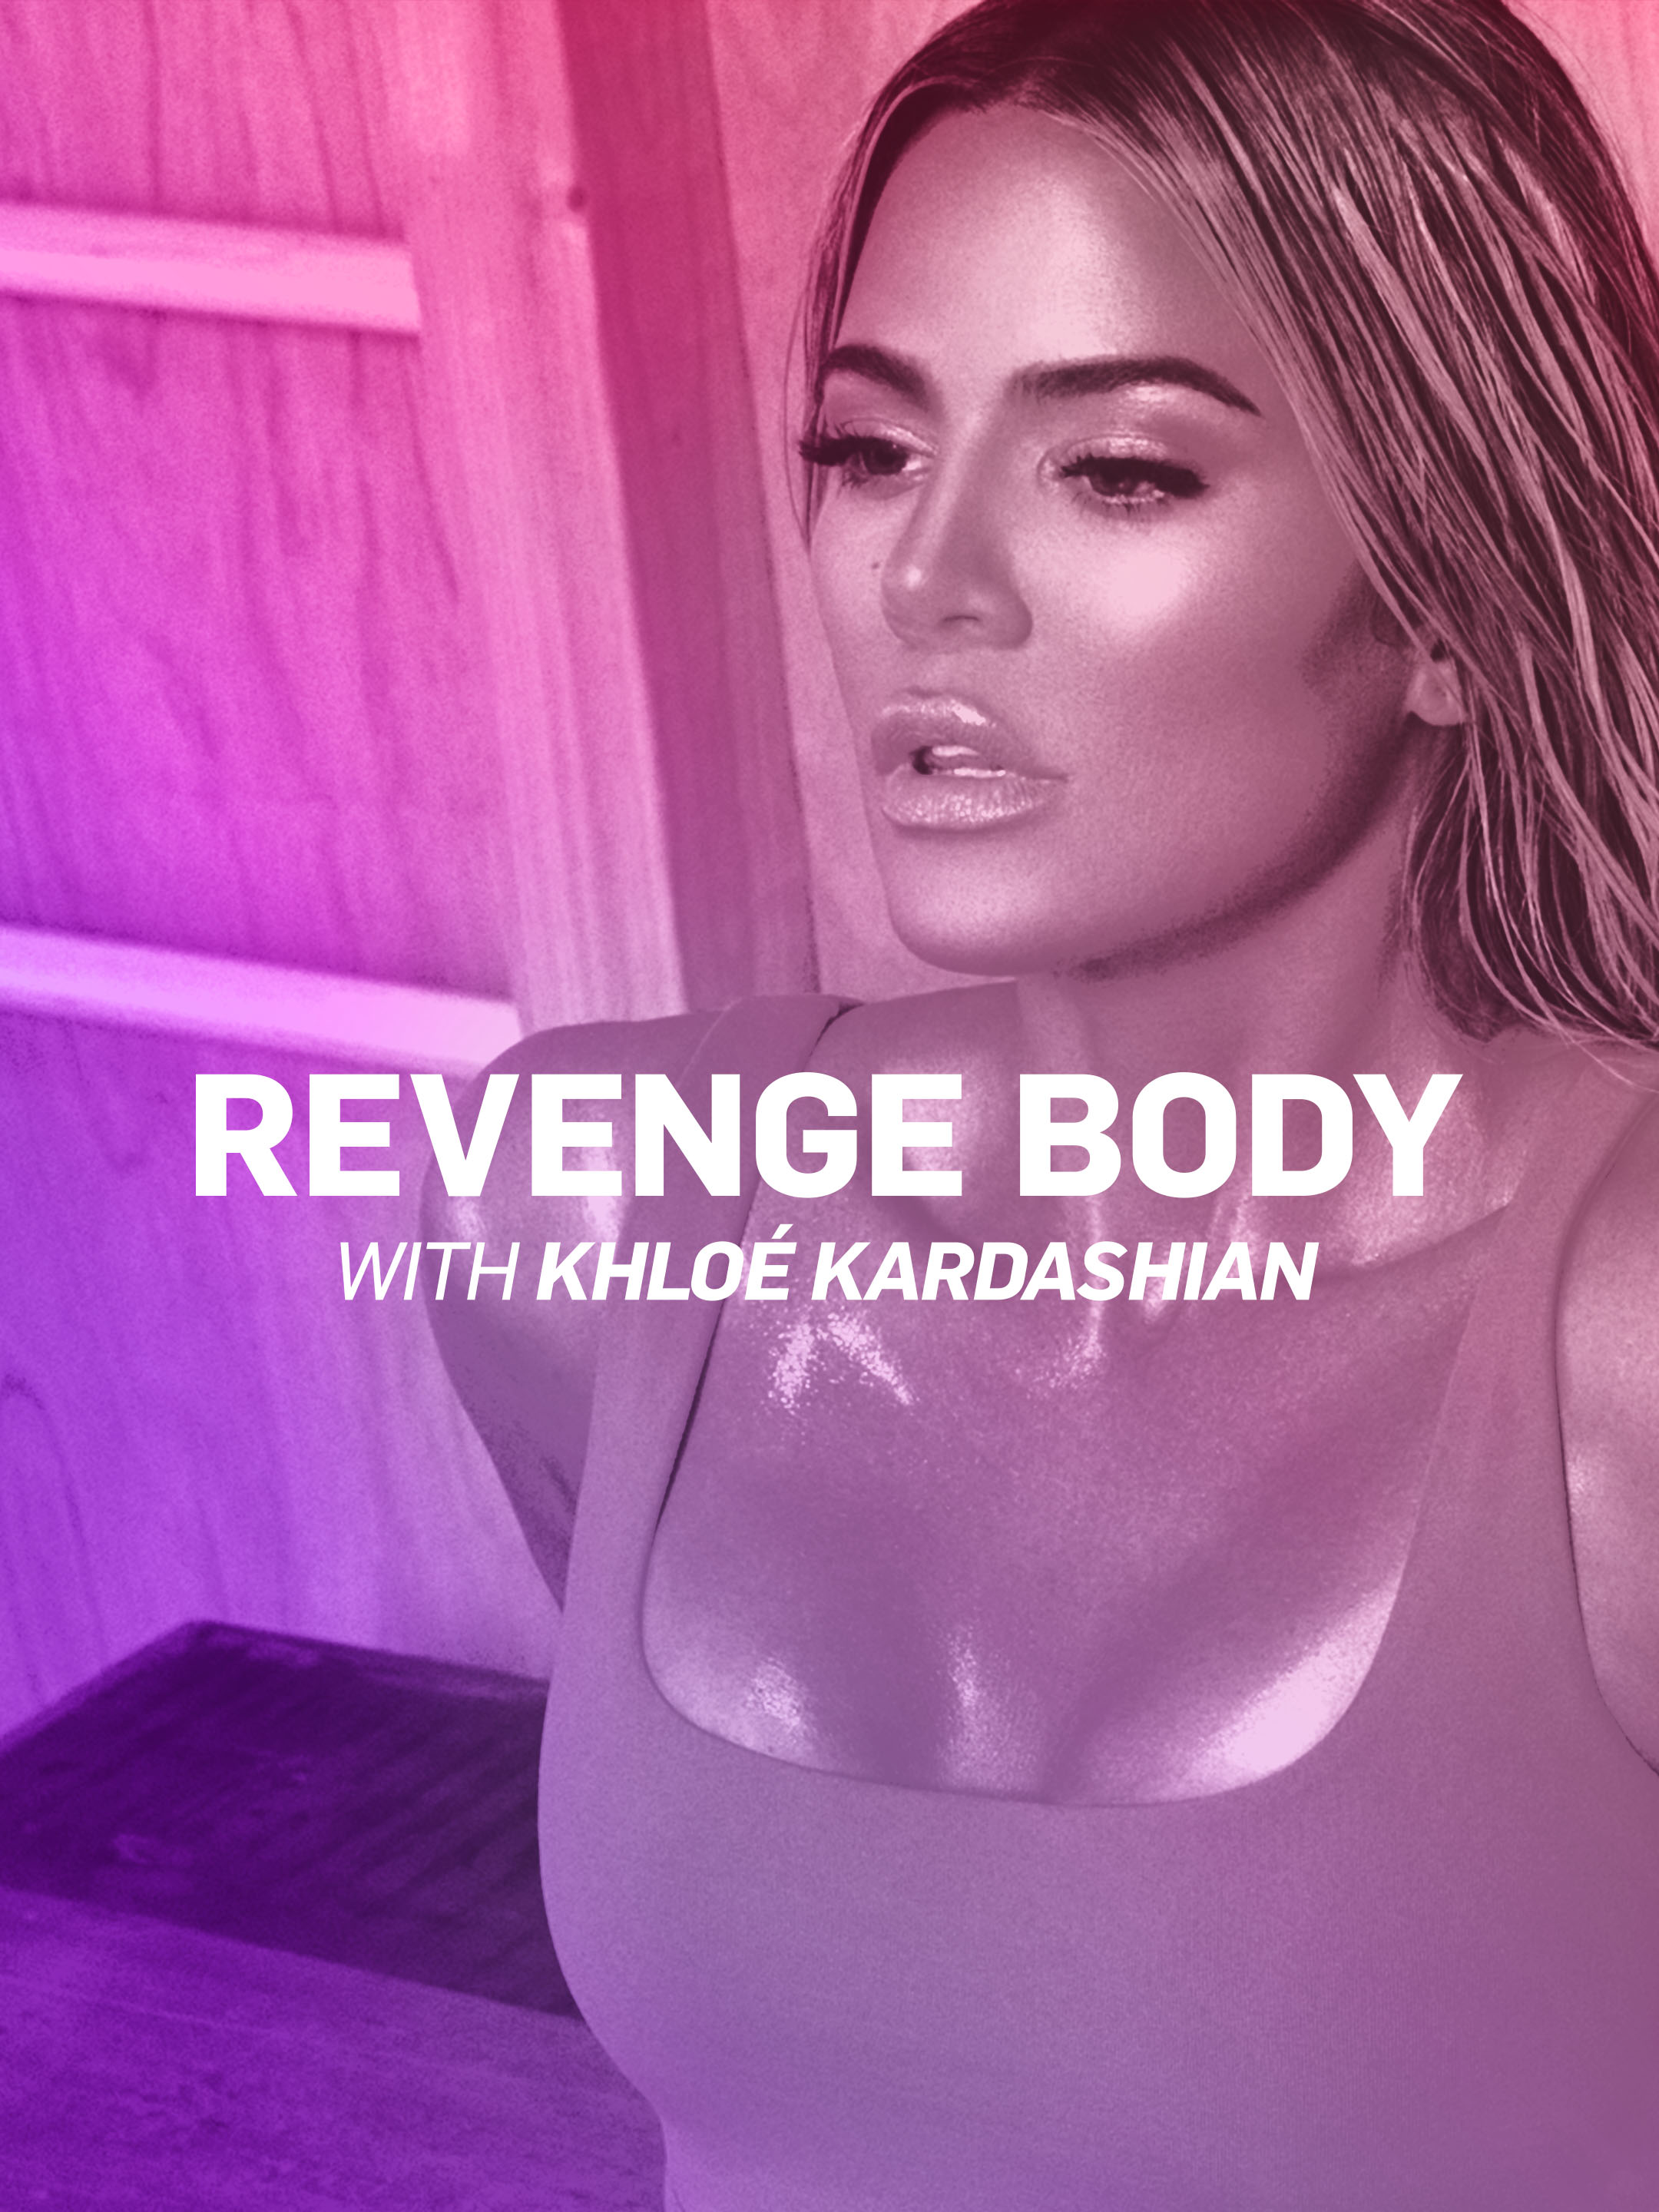 Revenge Body with Khloé Kardashian (TV Series 2017– ) - IMDb